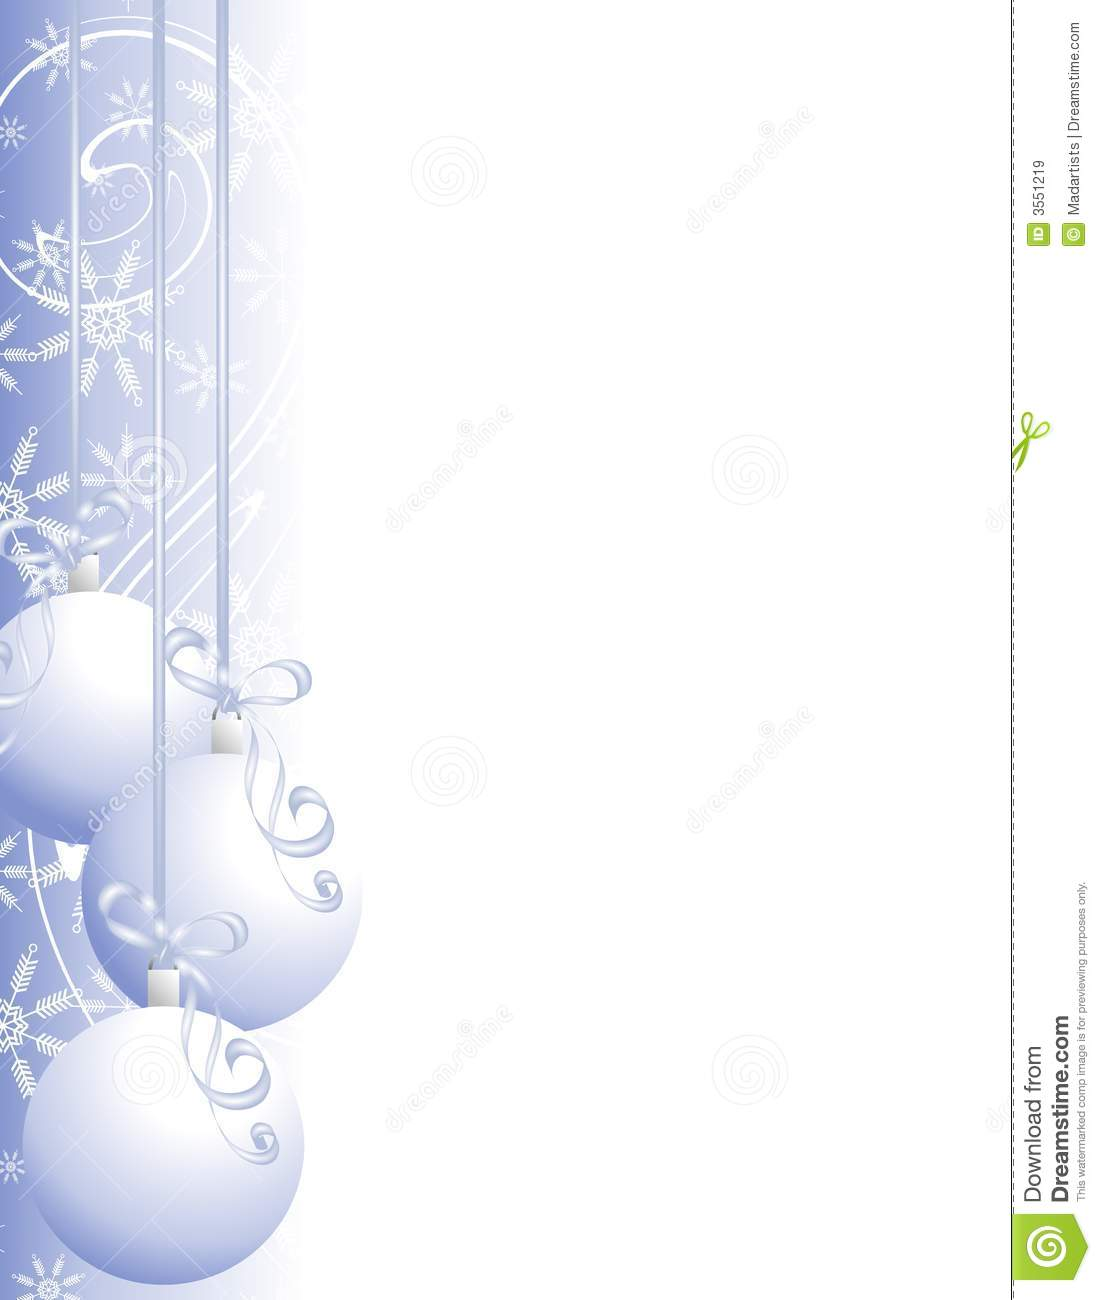 Clipart Holiday Page Borders.